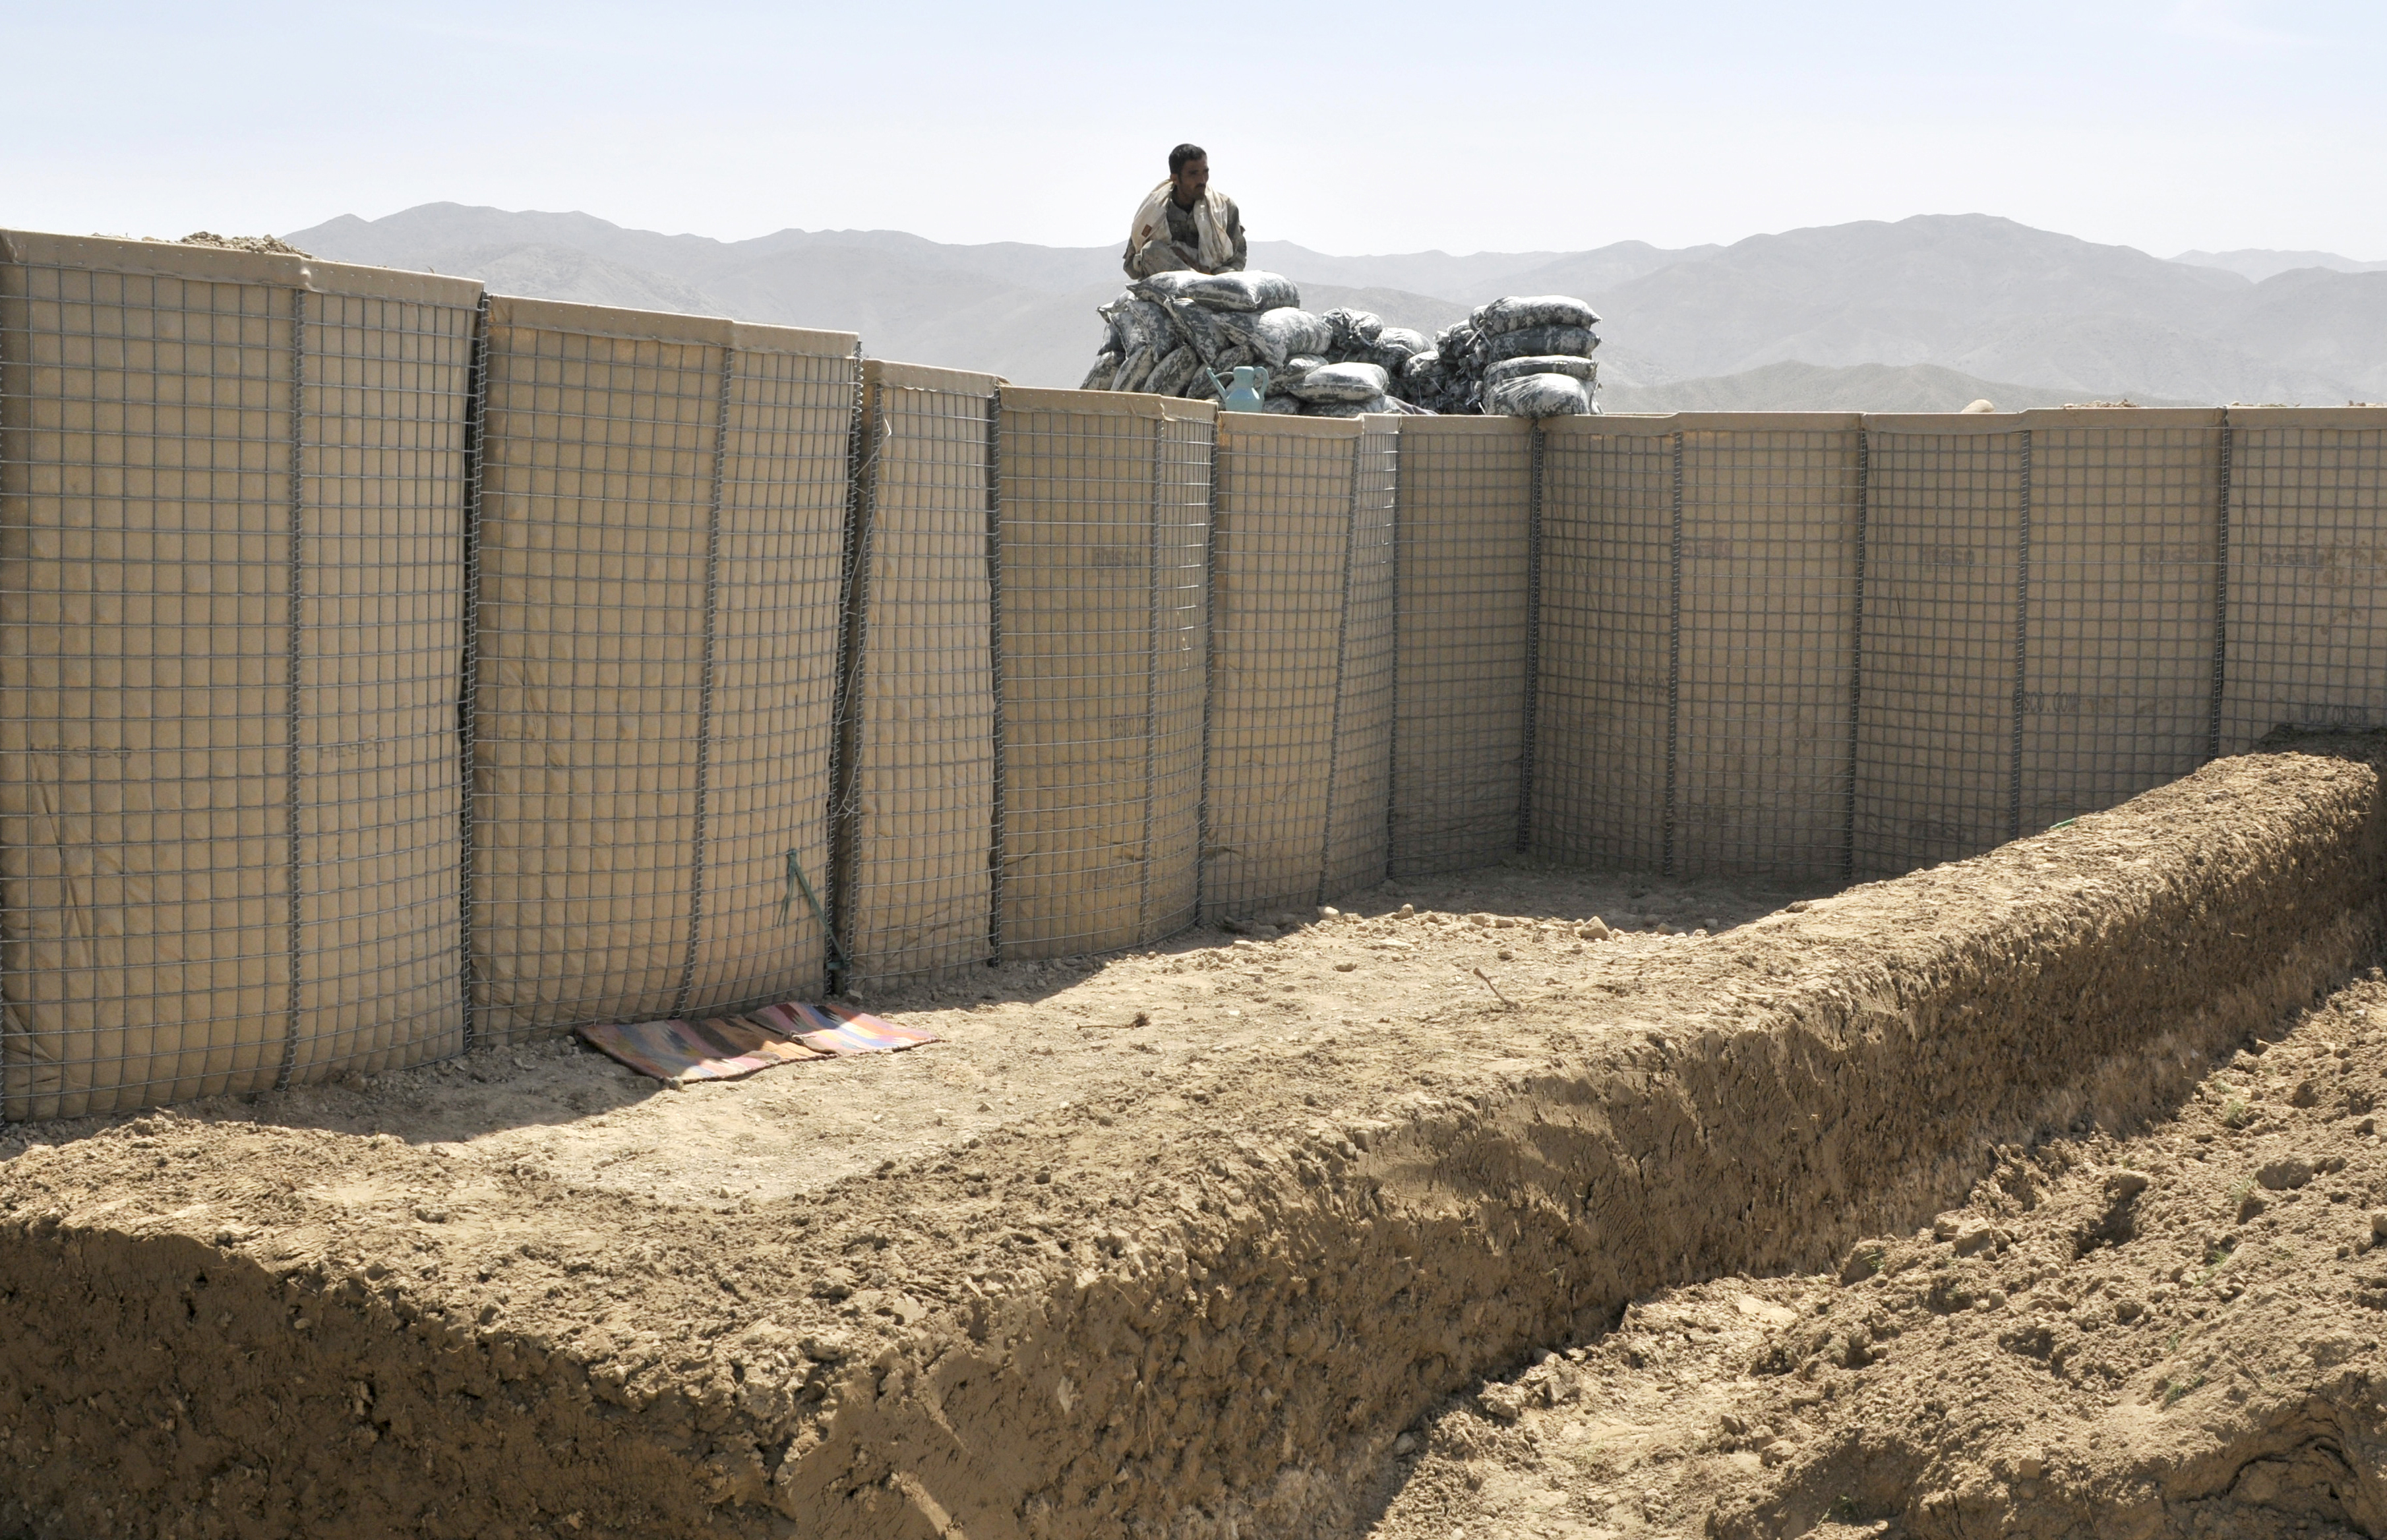 Bilderesultat for afghanistan pakistan wall